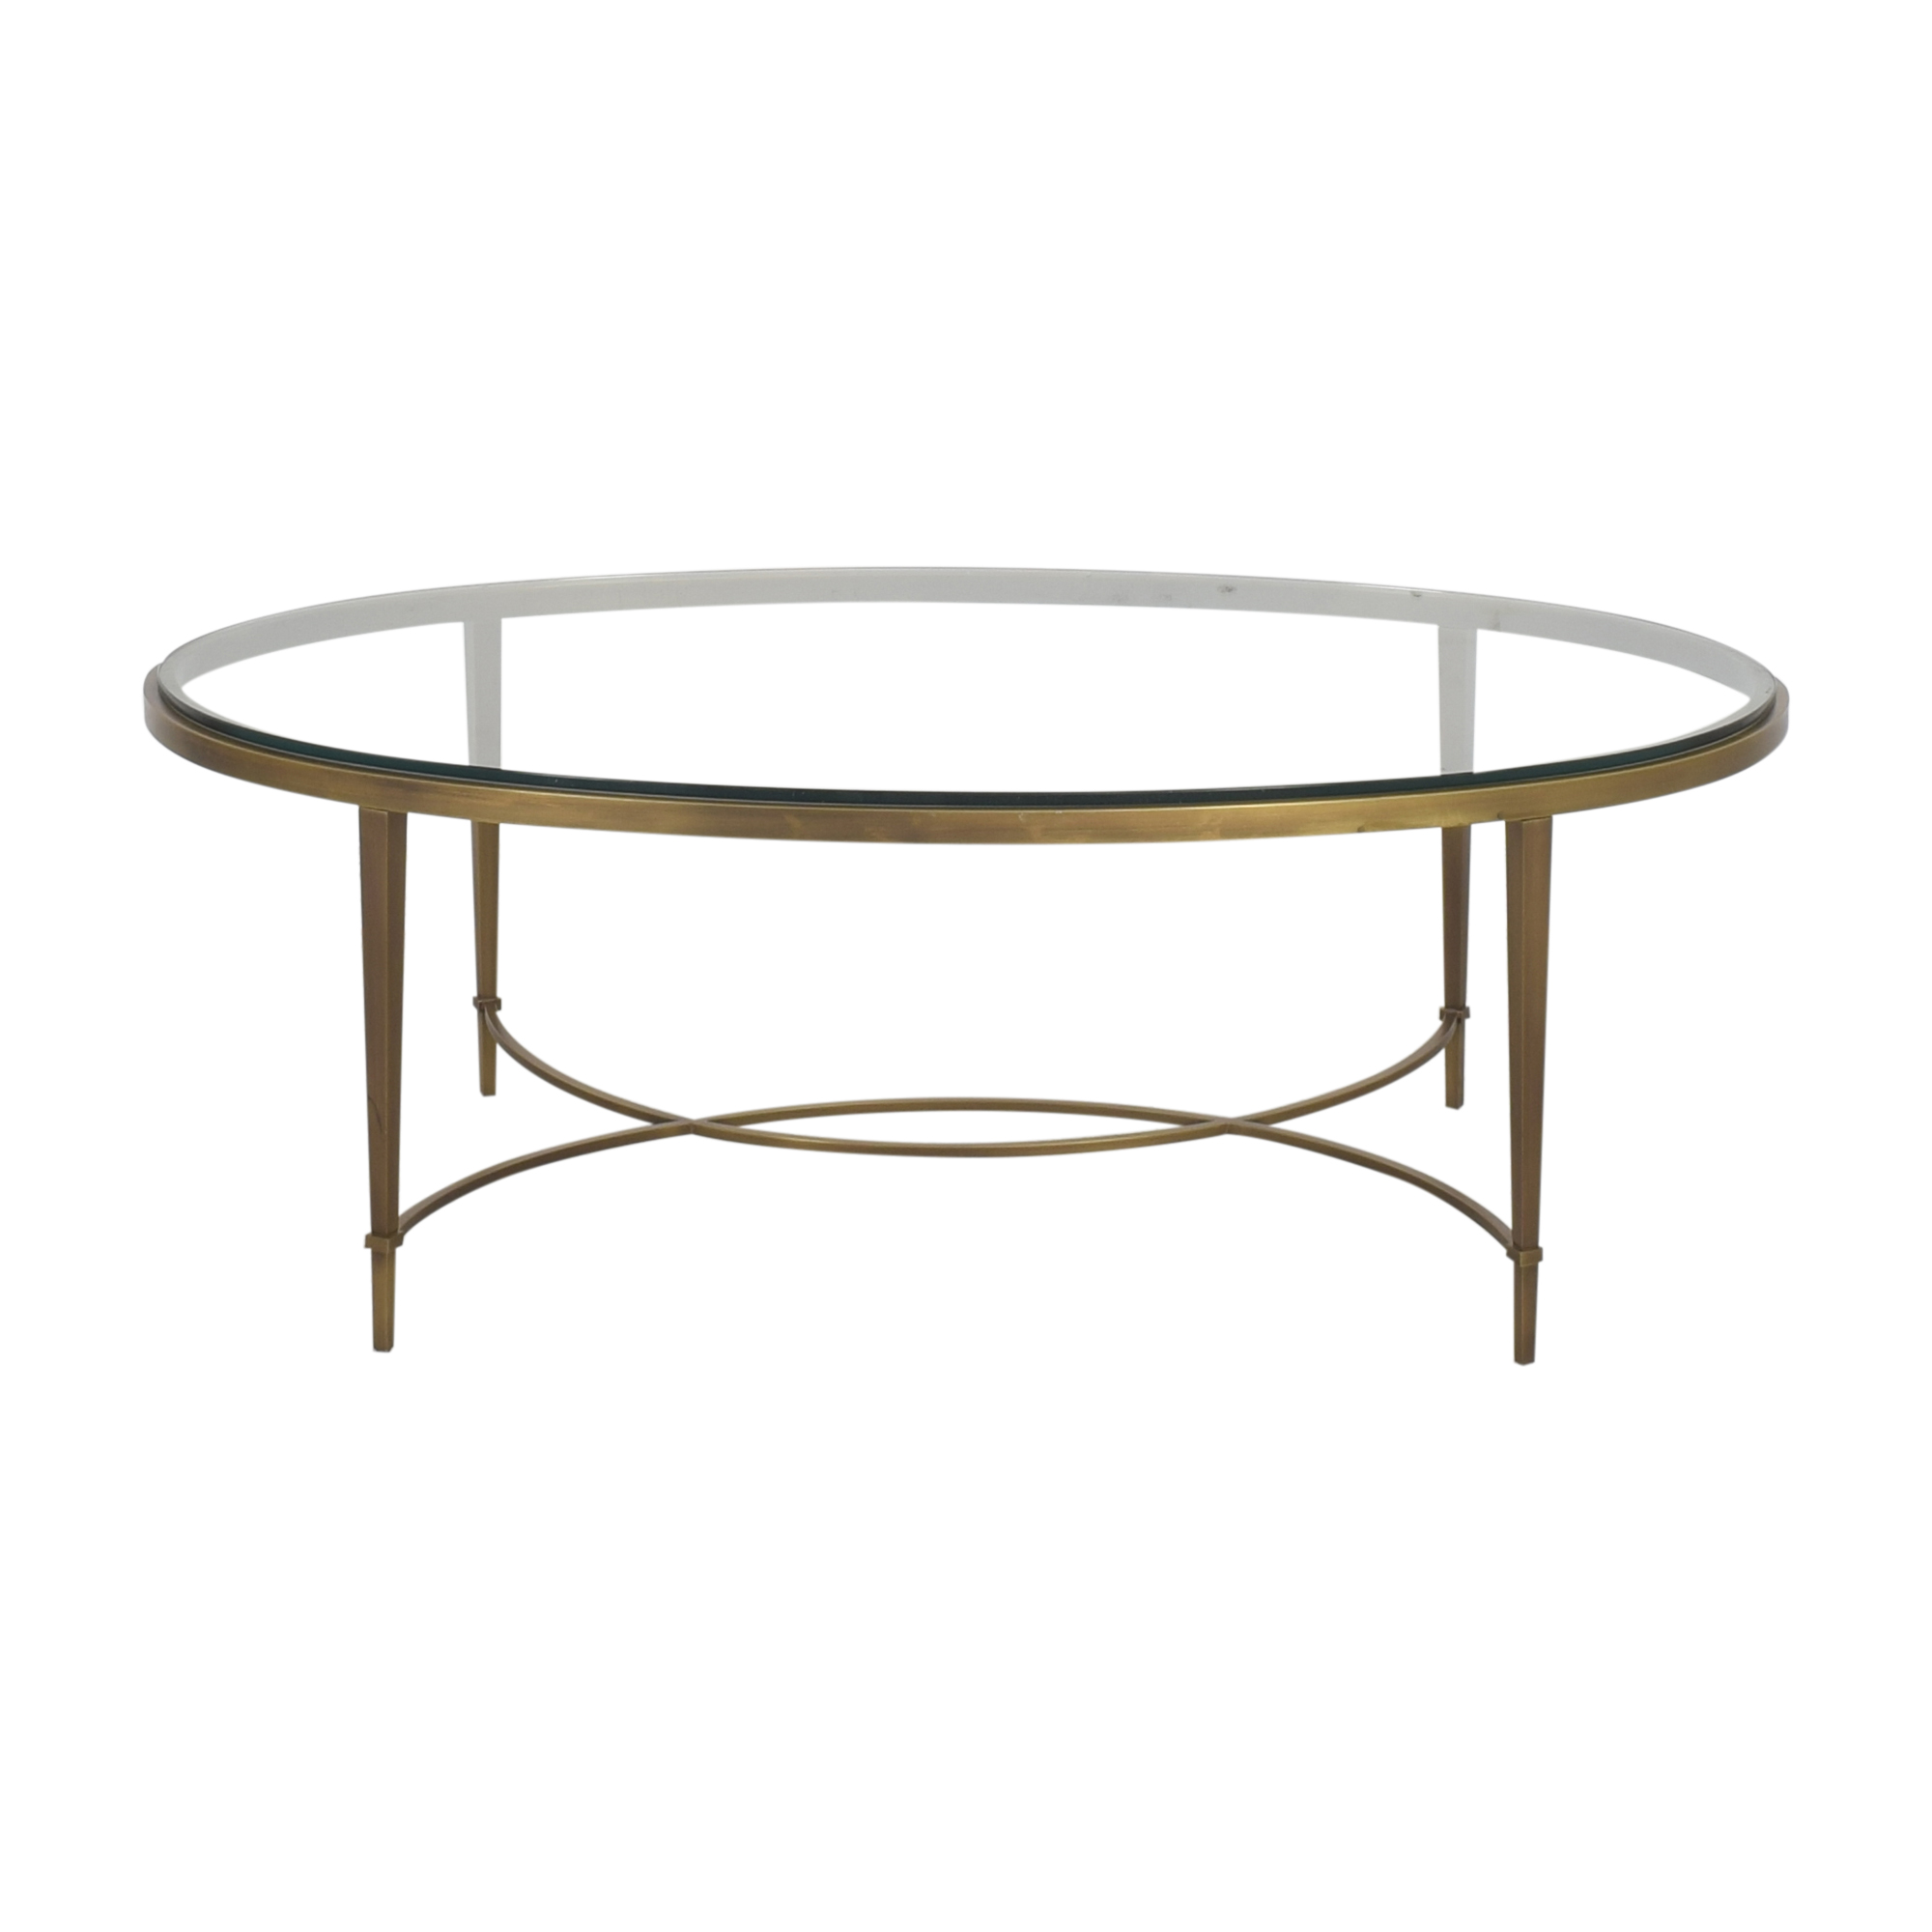 Baker Furniture Baker Furniture Oval Coffee Table dimensions